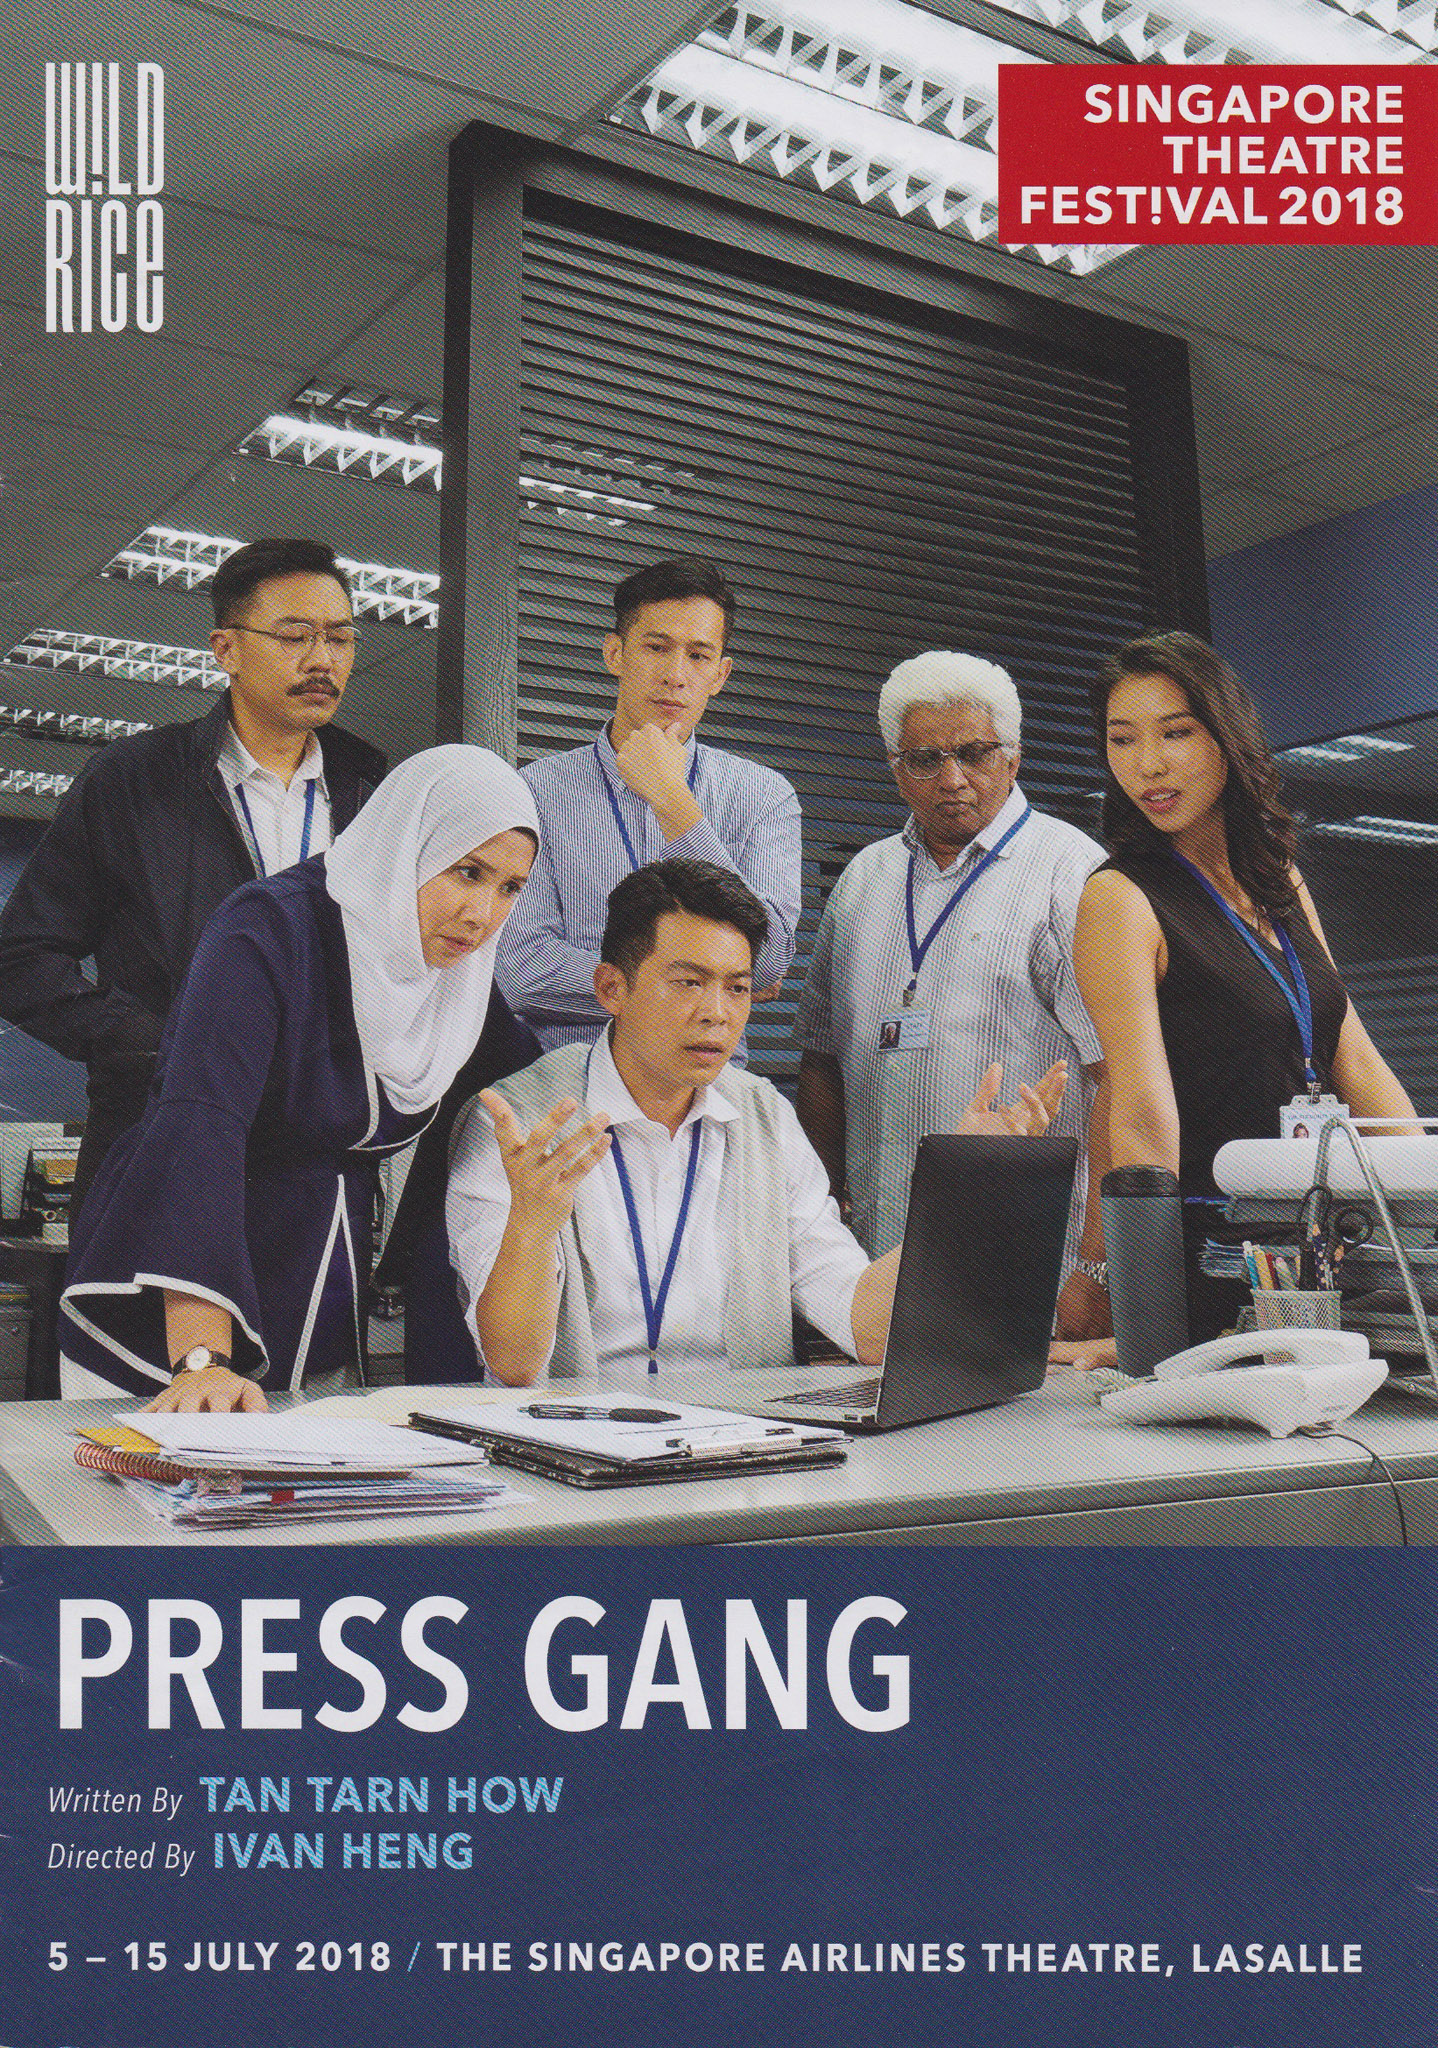 013W!ld-Rice-2018-Press-Gang-singapore-photographer-editorial-commercial-3_18.jpg